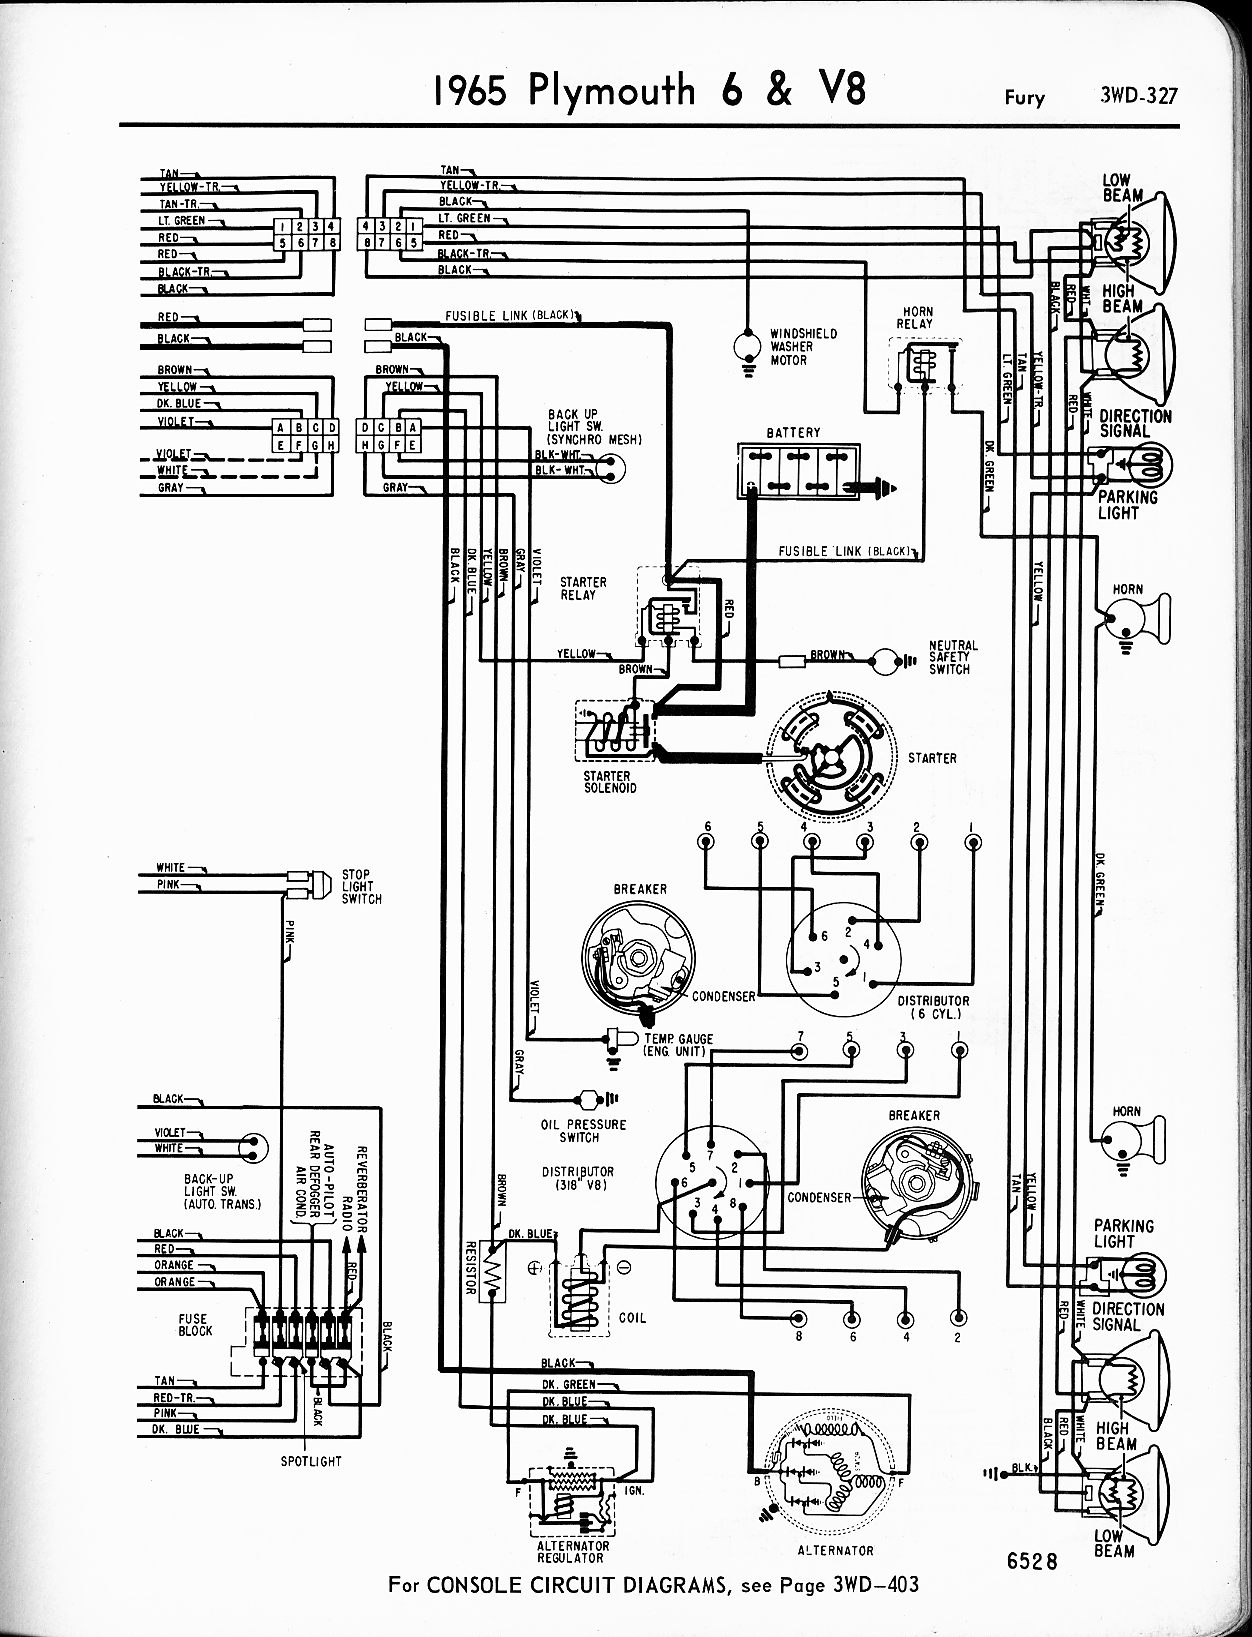 1956 1965 plymouth wiring the old car manual project rh oldcarmanualproject com Wire Two Mollar Plymouth Wiring Diagrams 1970 plymouth engine wiring diagram